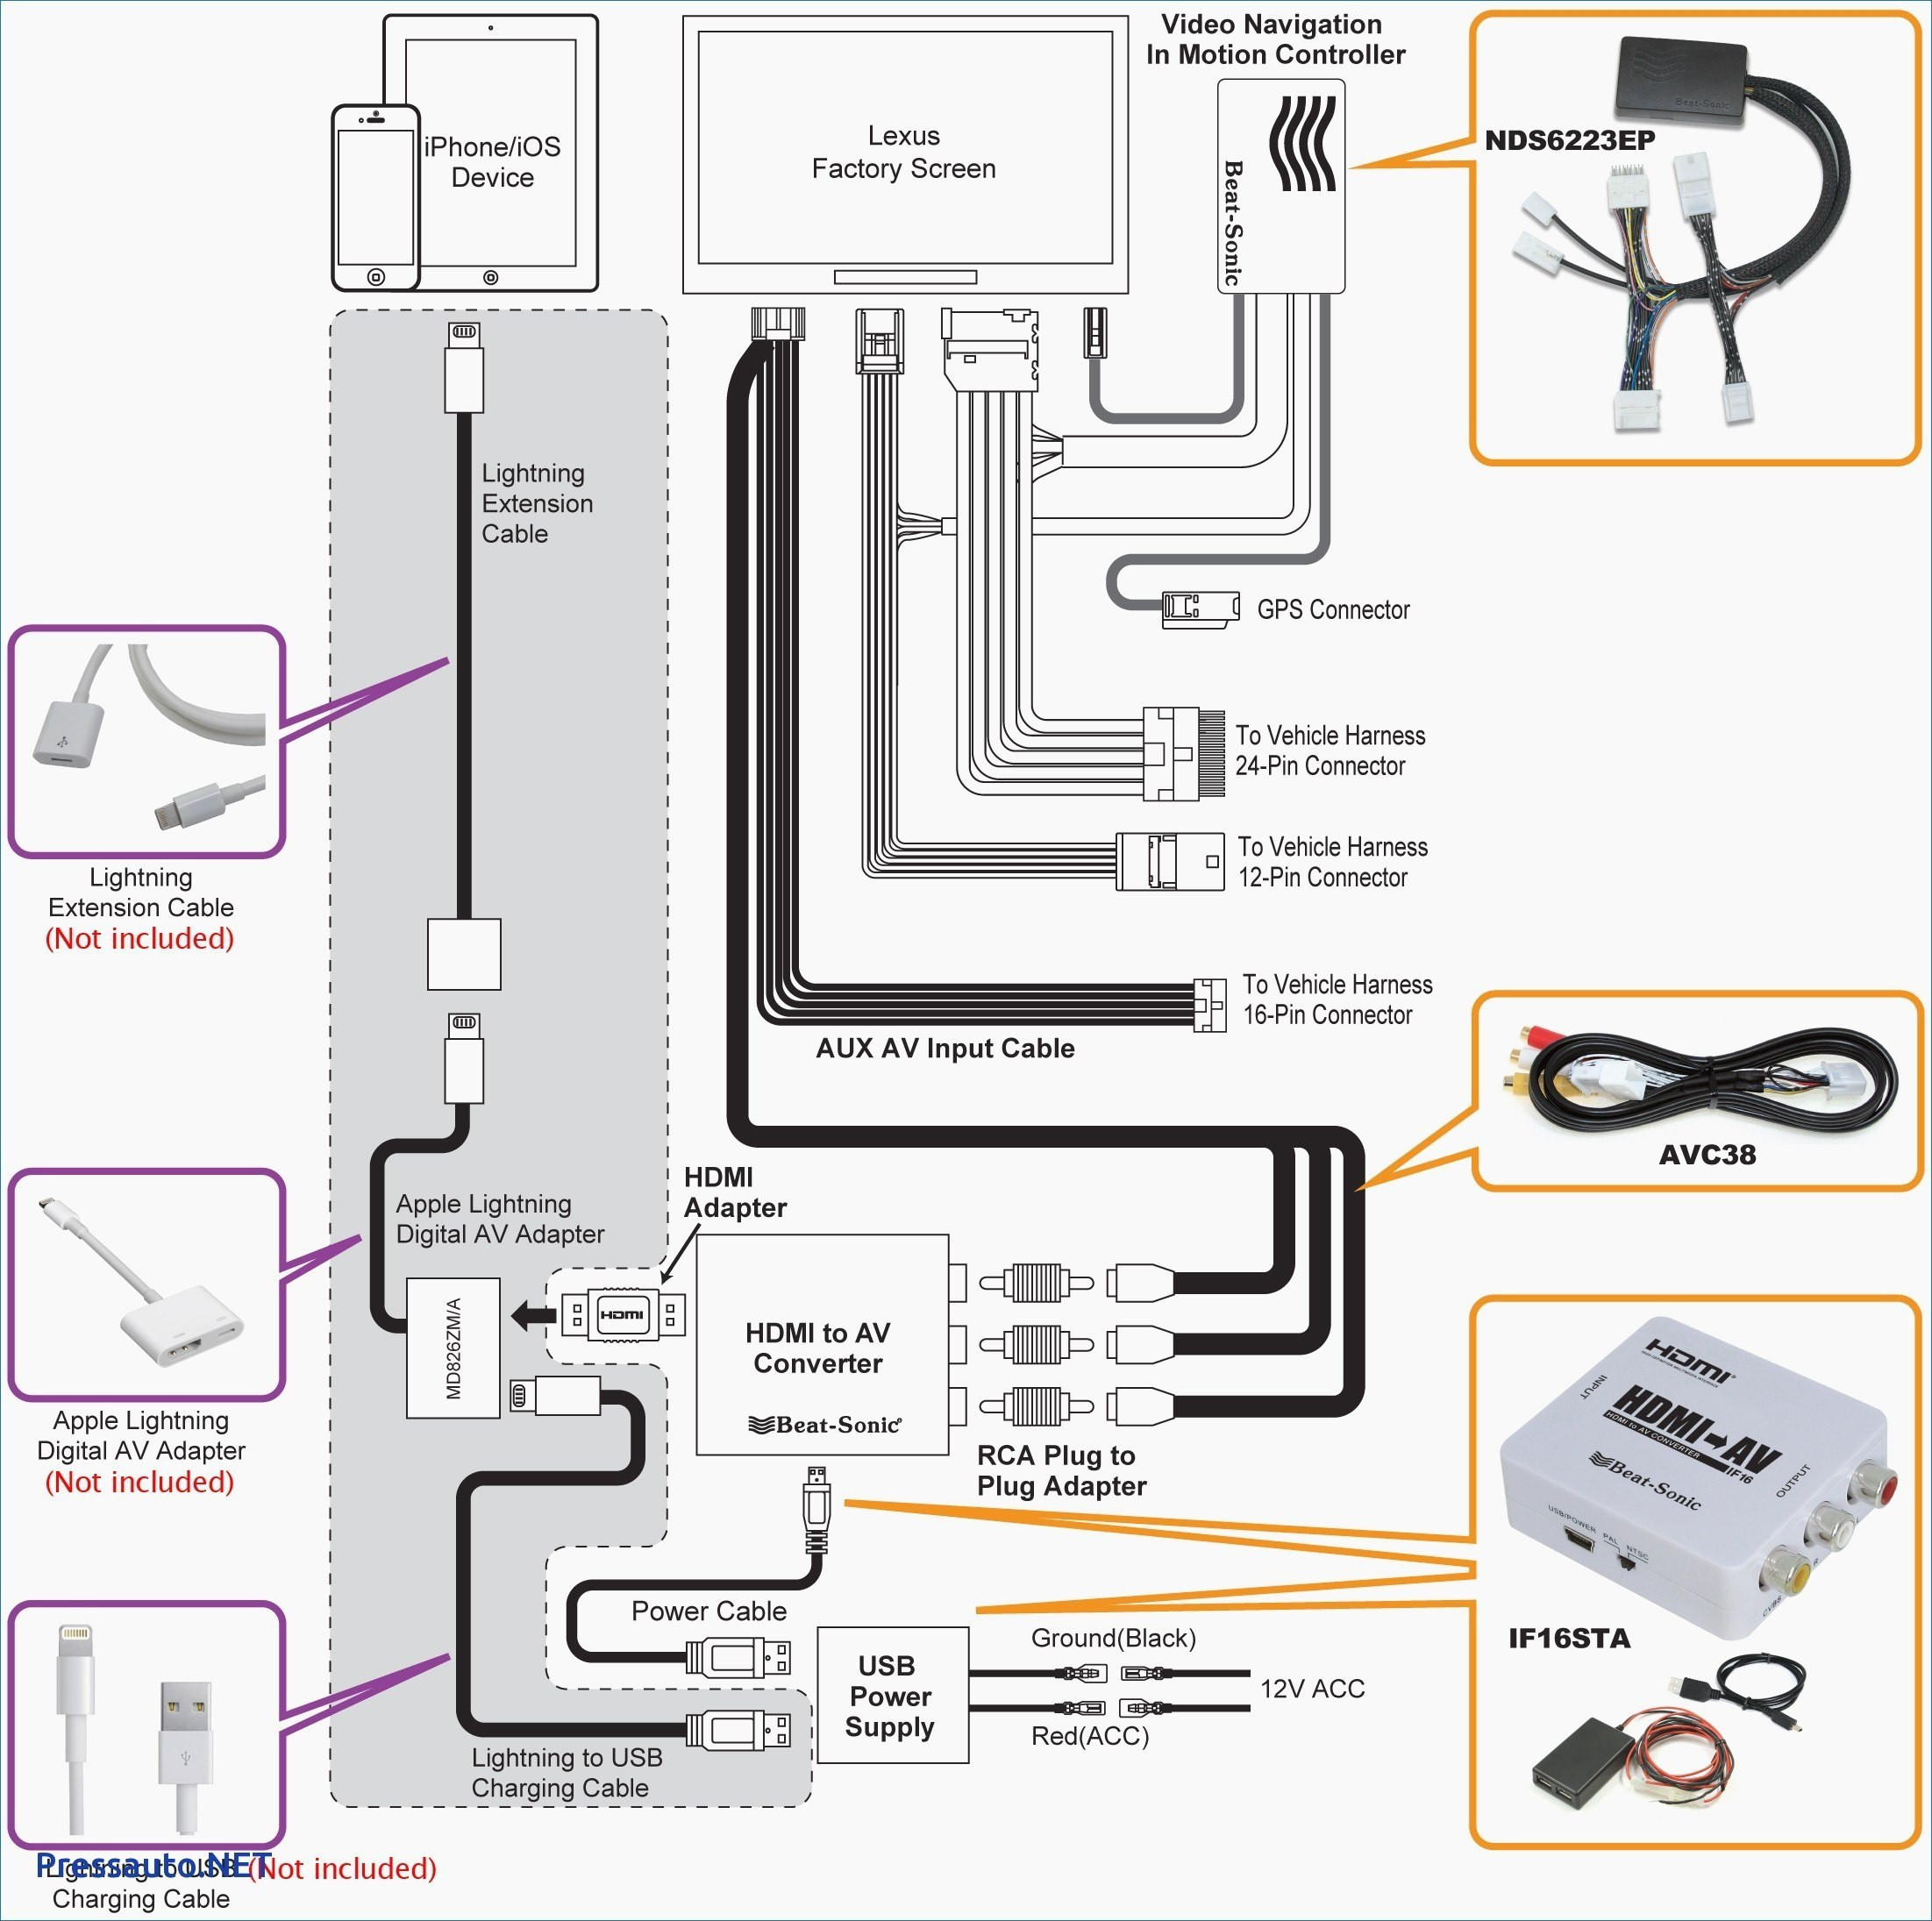 Wiring Diagram For Usb Plug | Msyc Switch Wiring Diagram - Wiring Diagram For Usb Connector